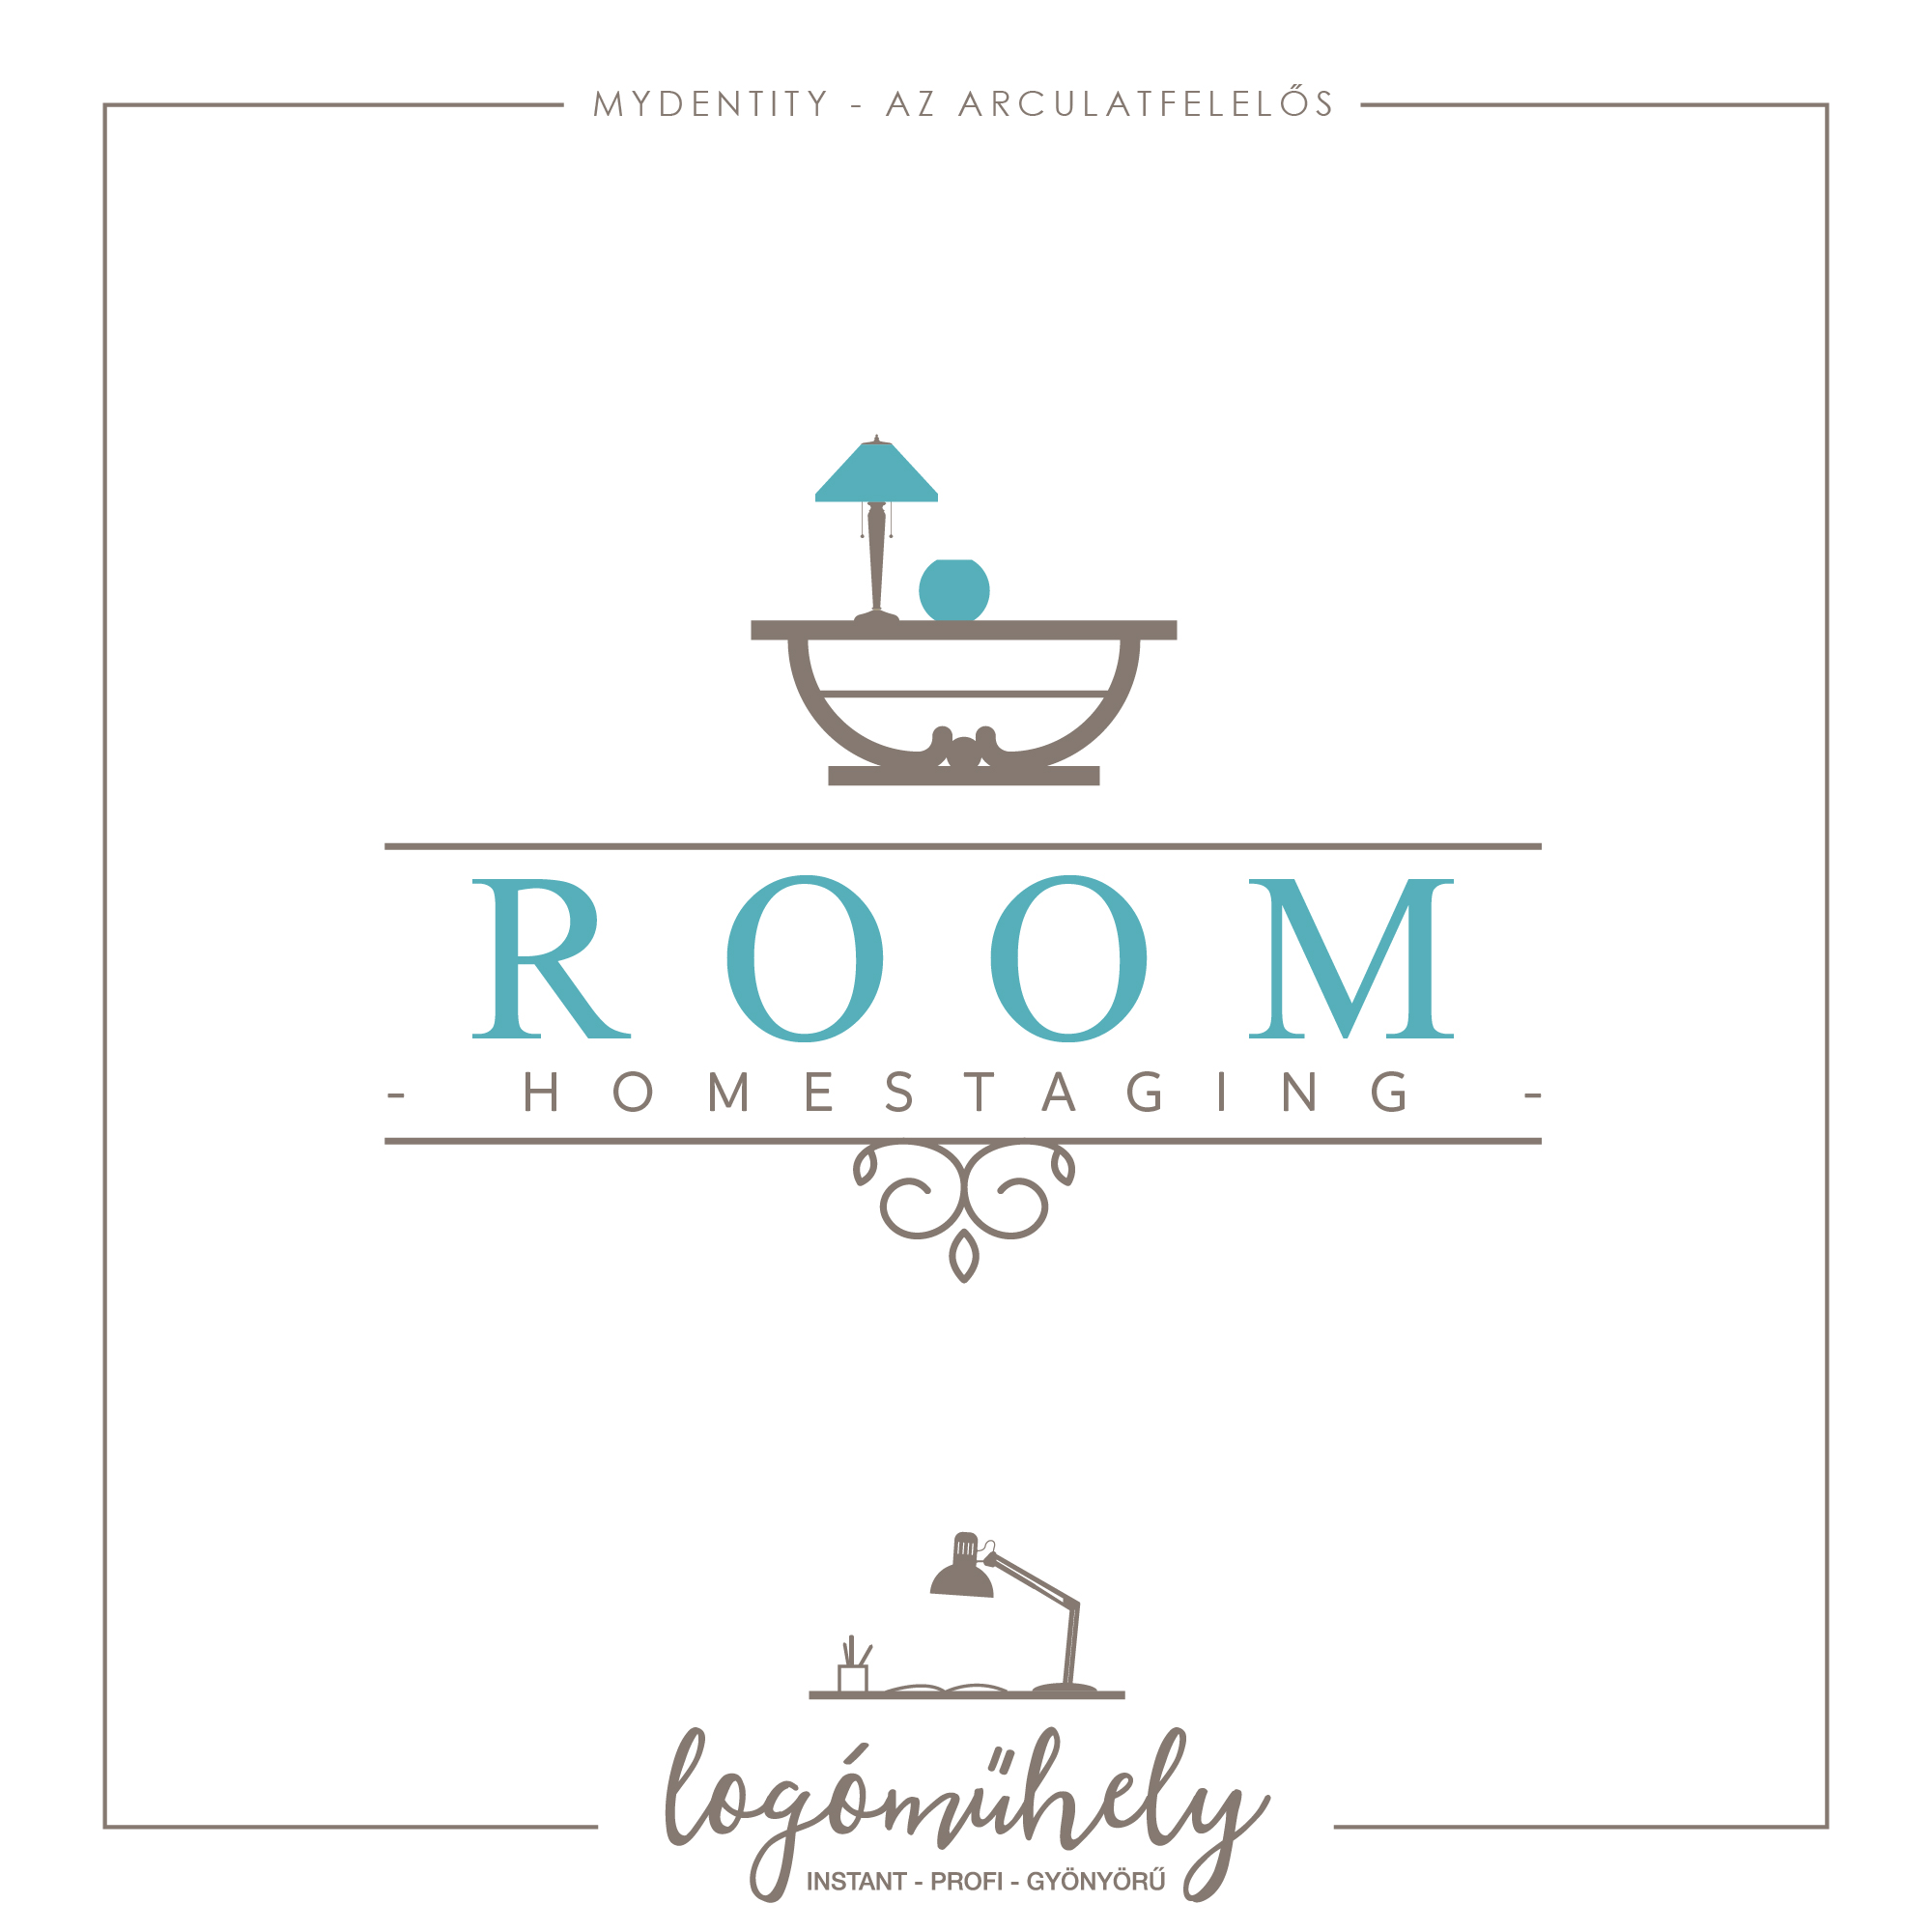 room homestaging logo